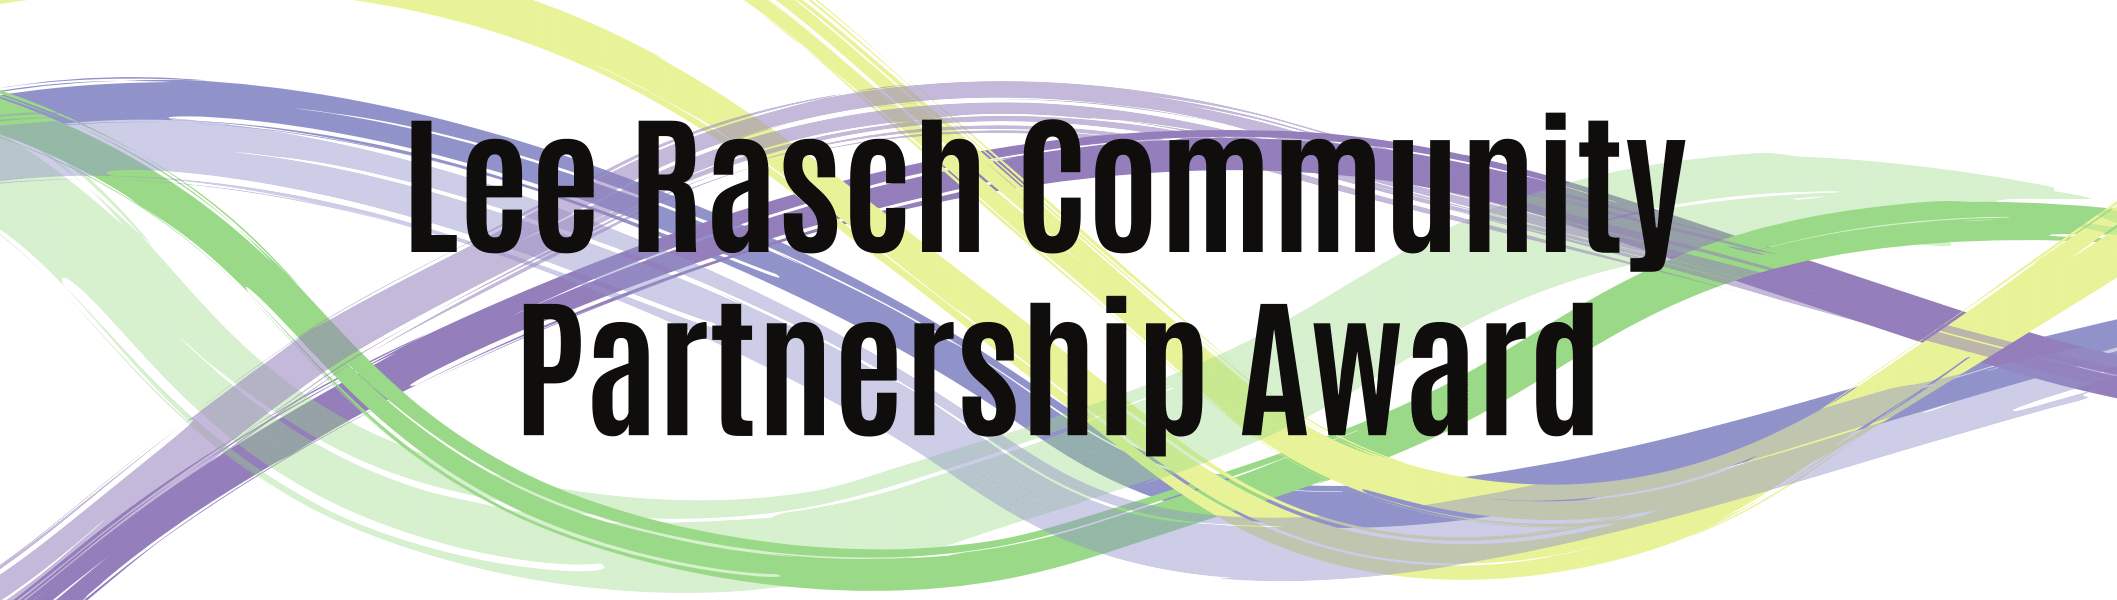 Lee Rasch Community Partnership Award